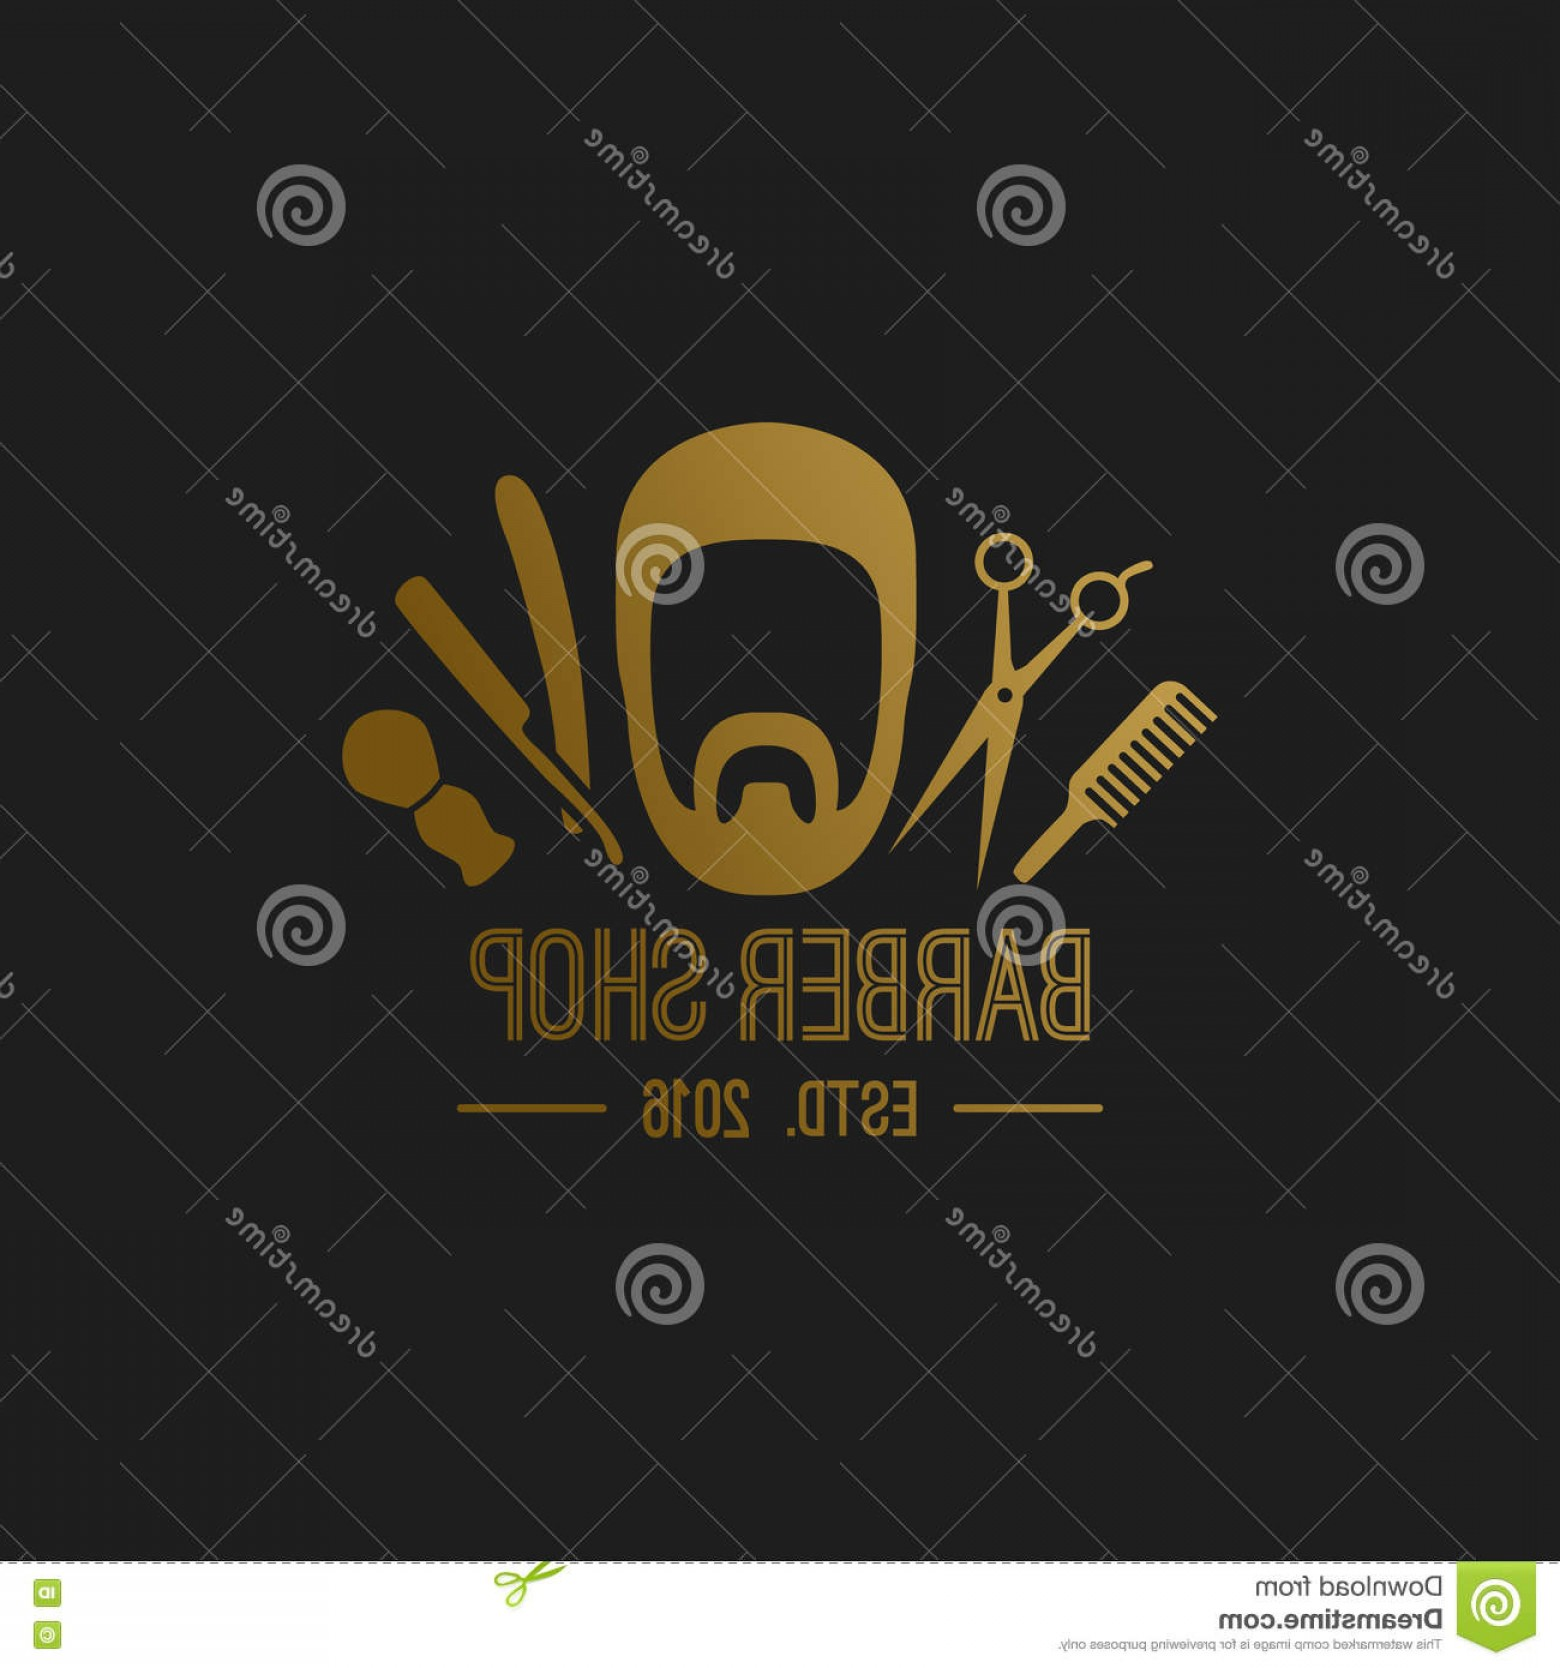 Golden Barber Vector: Stock Illustration Luxury Barber Shop Logo Golden Hair Label Image